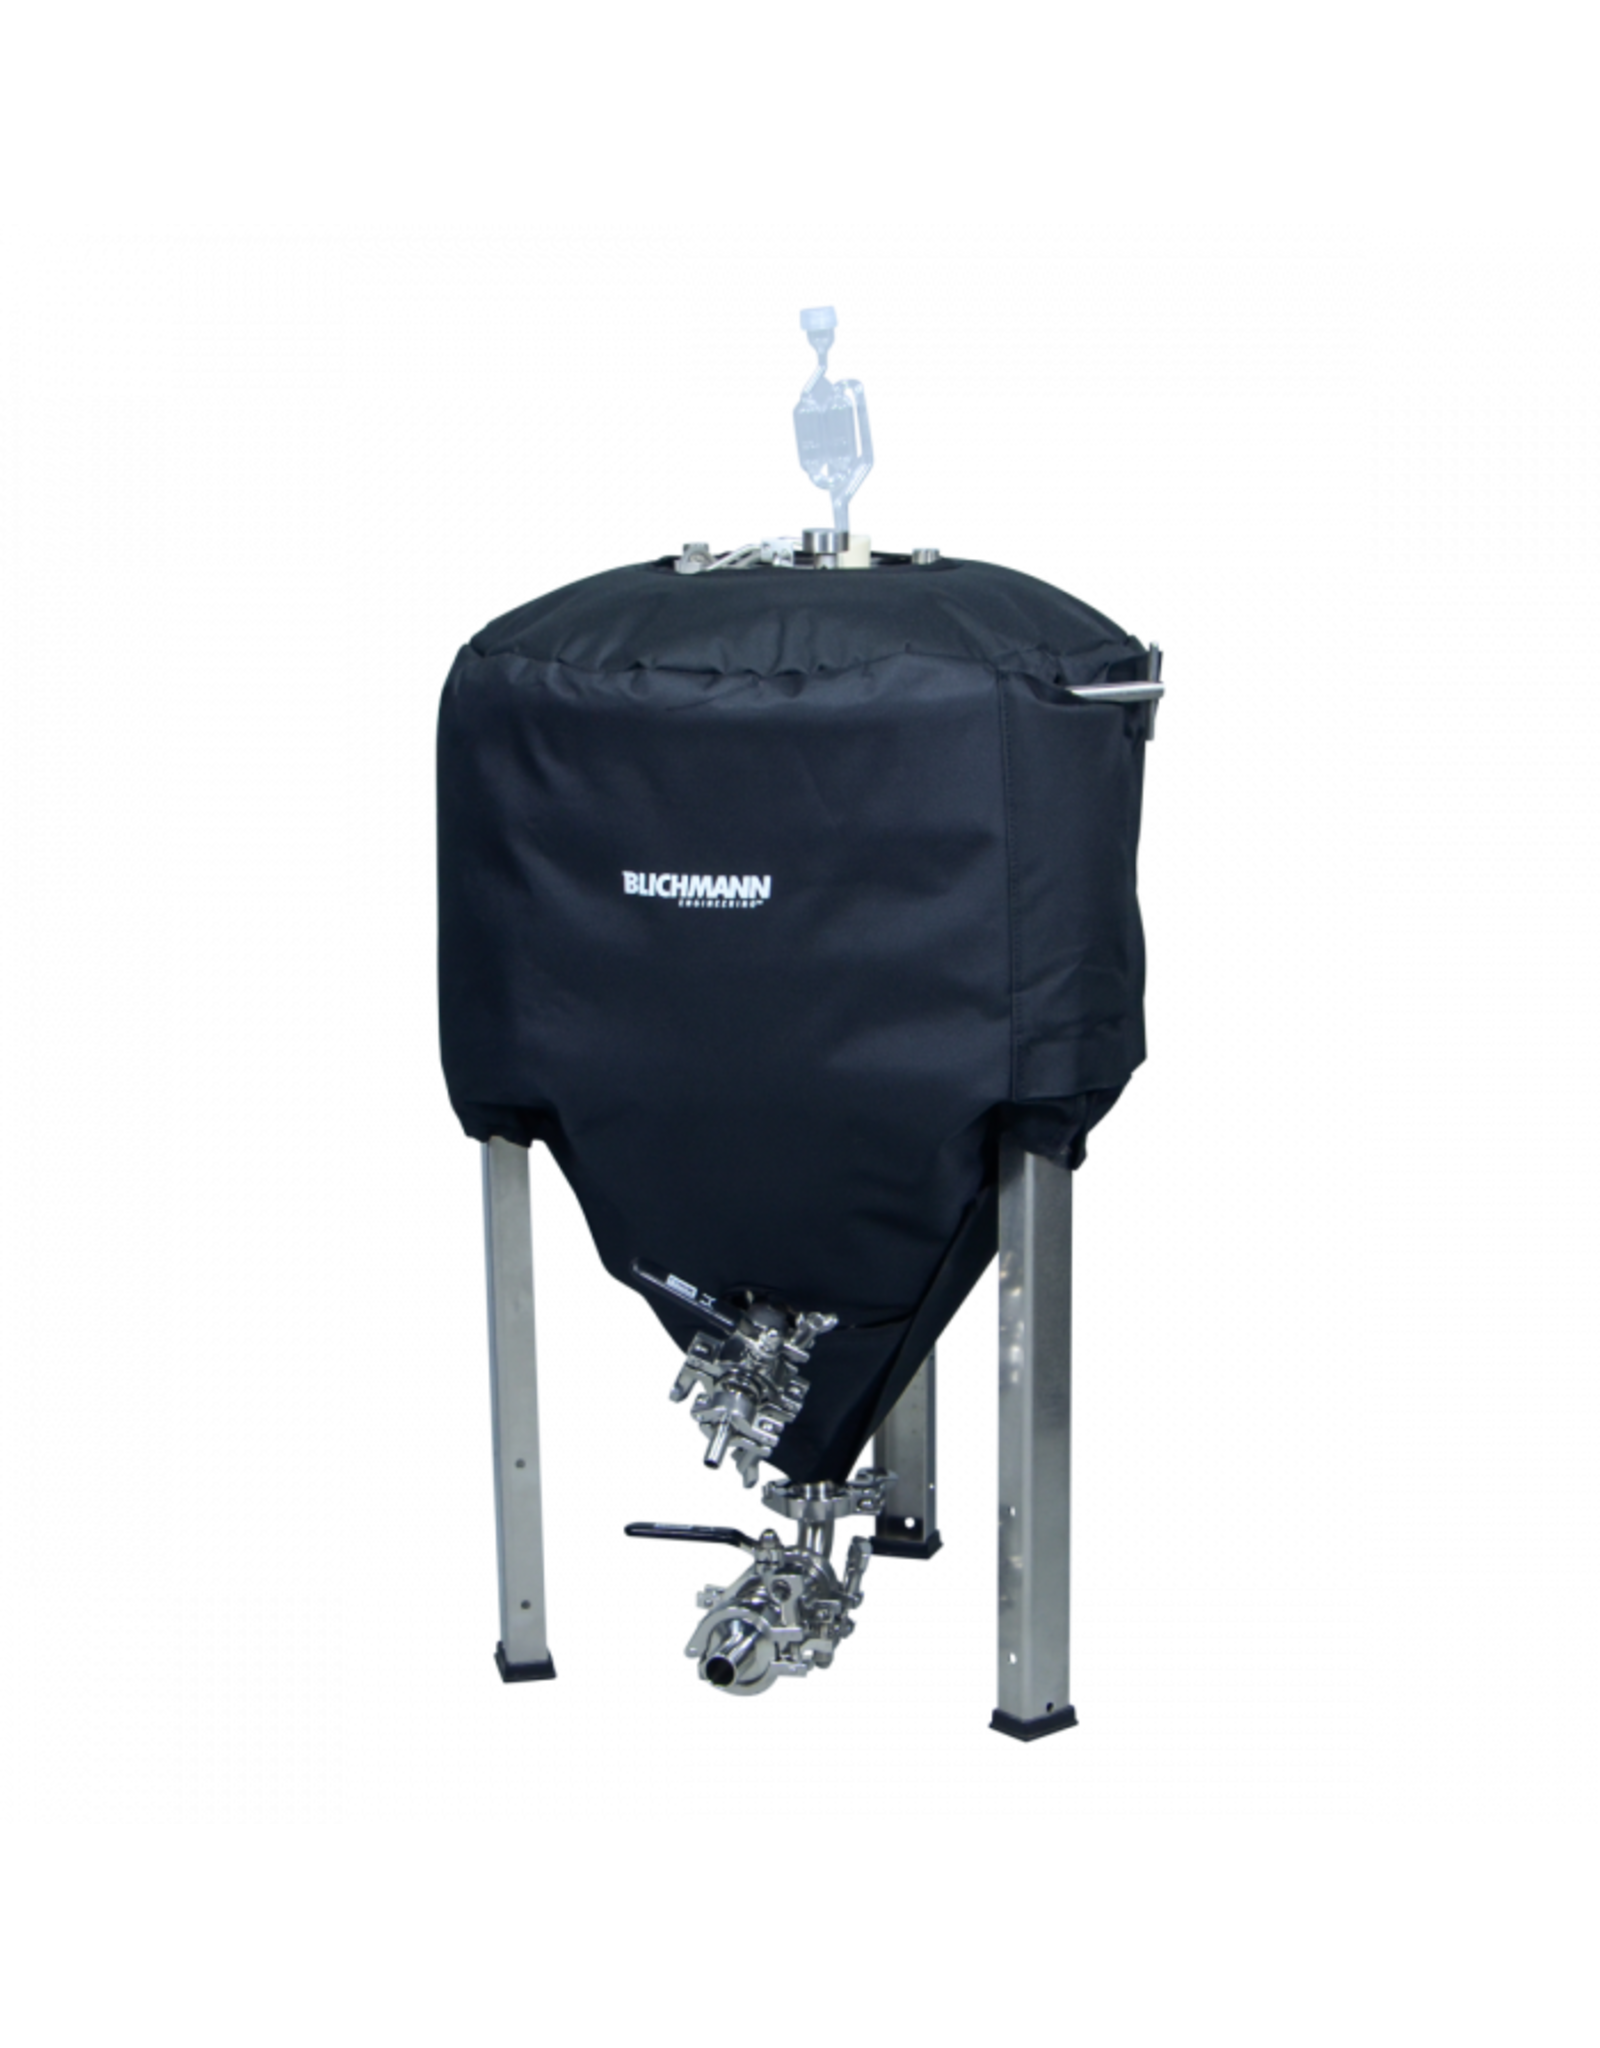 7 GALLON CONICAL JACKET